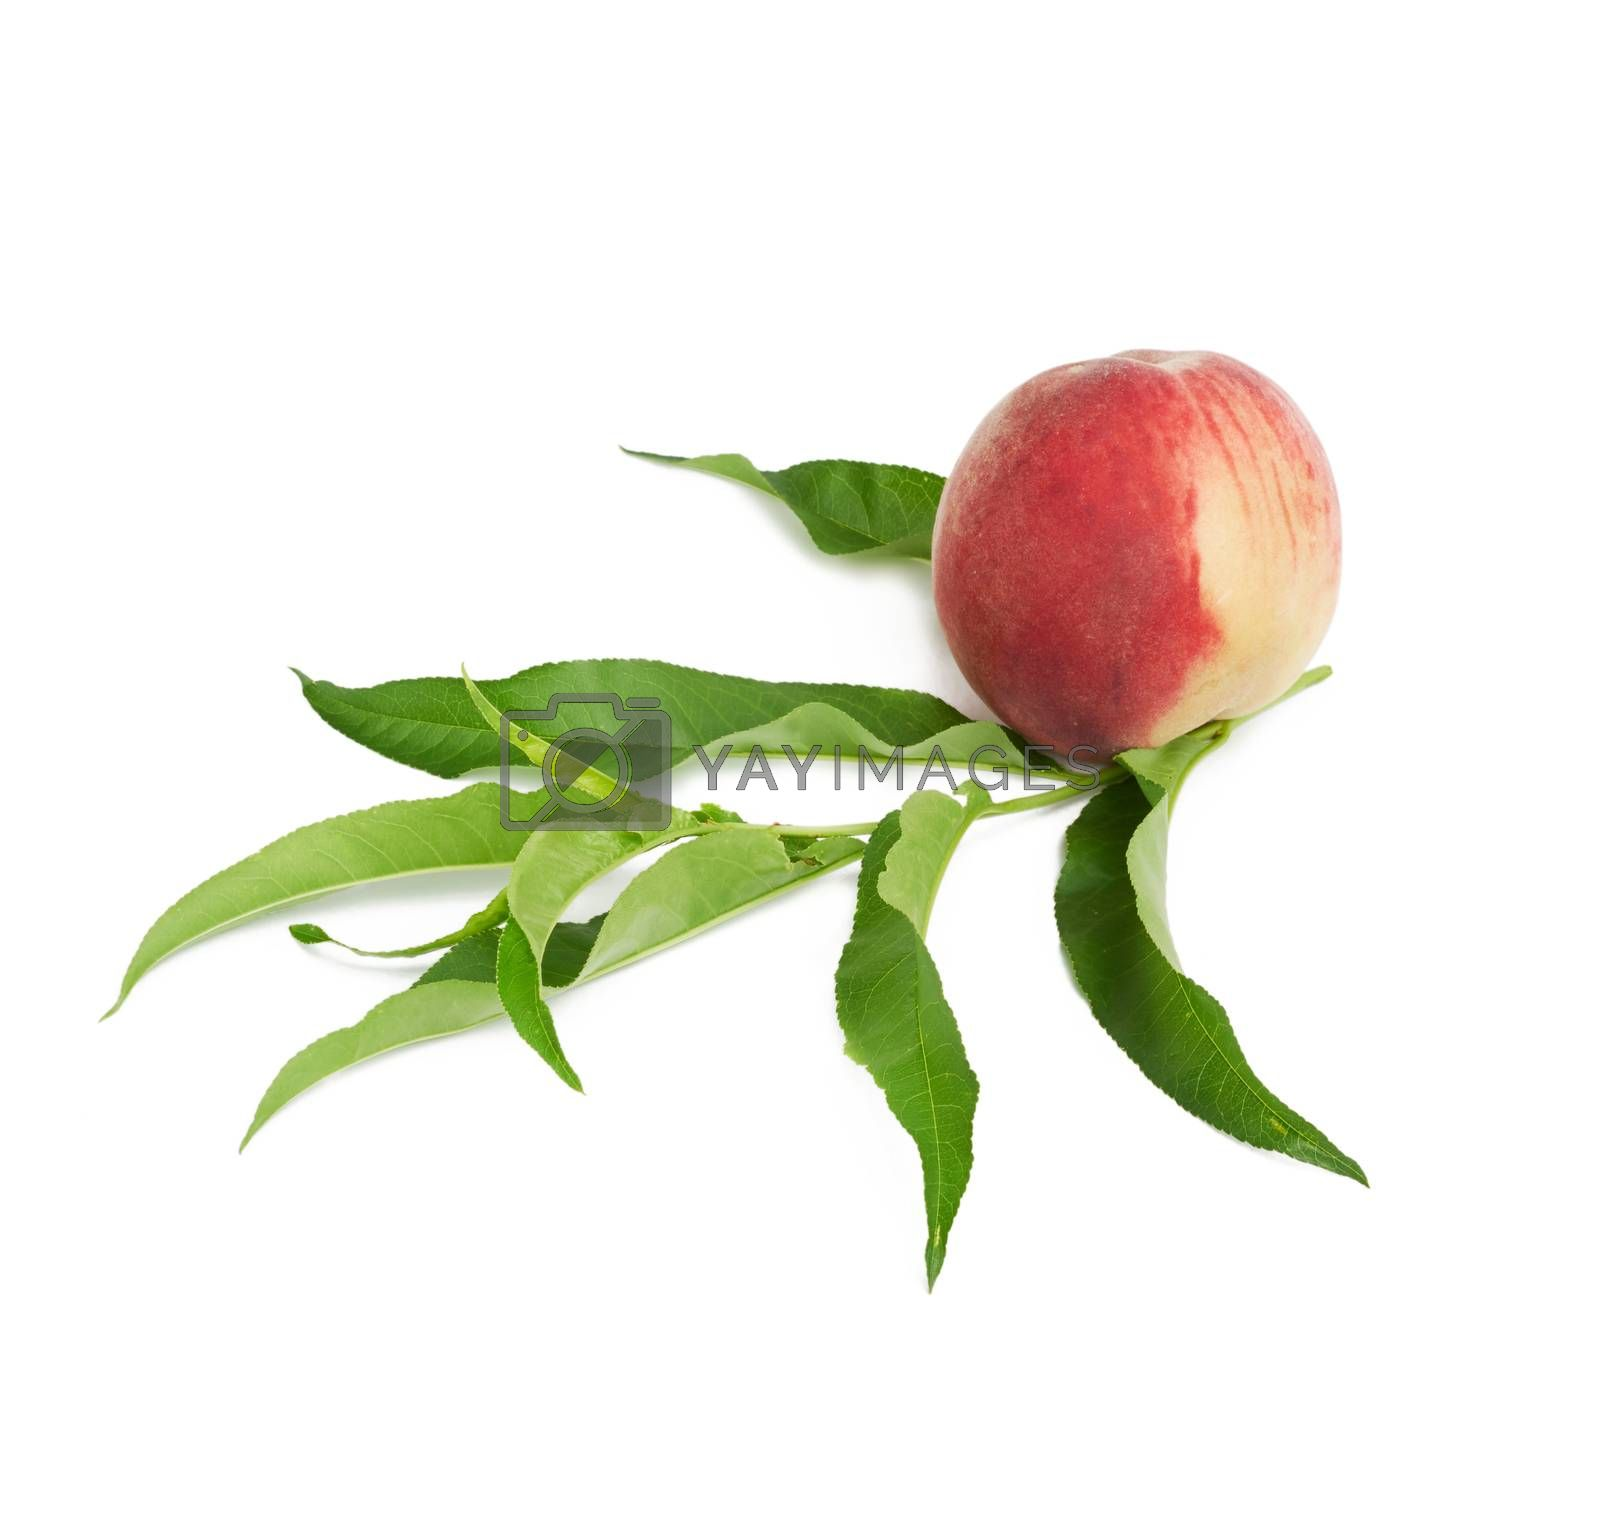 whole ripe red peach and green leaves isolated on a white background, close up